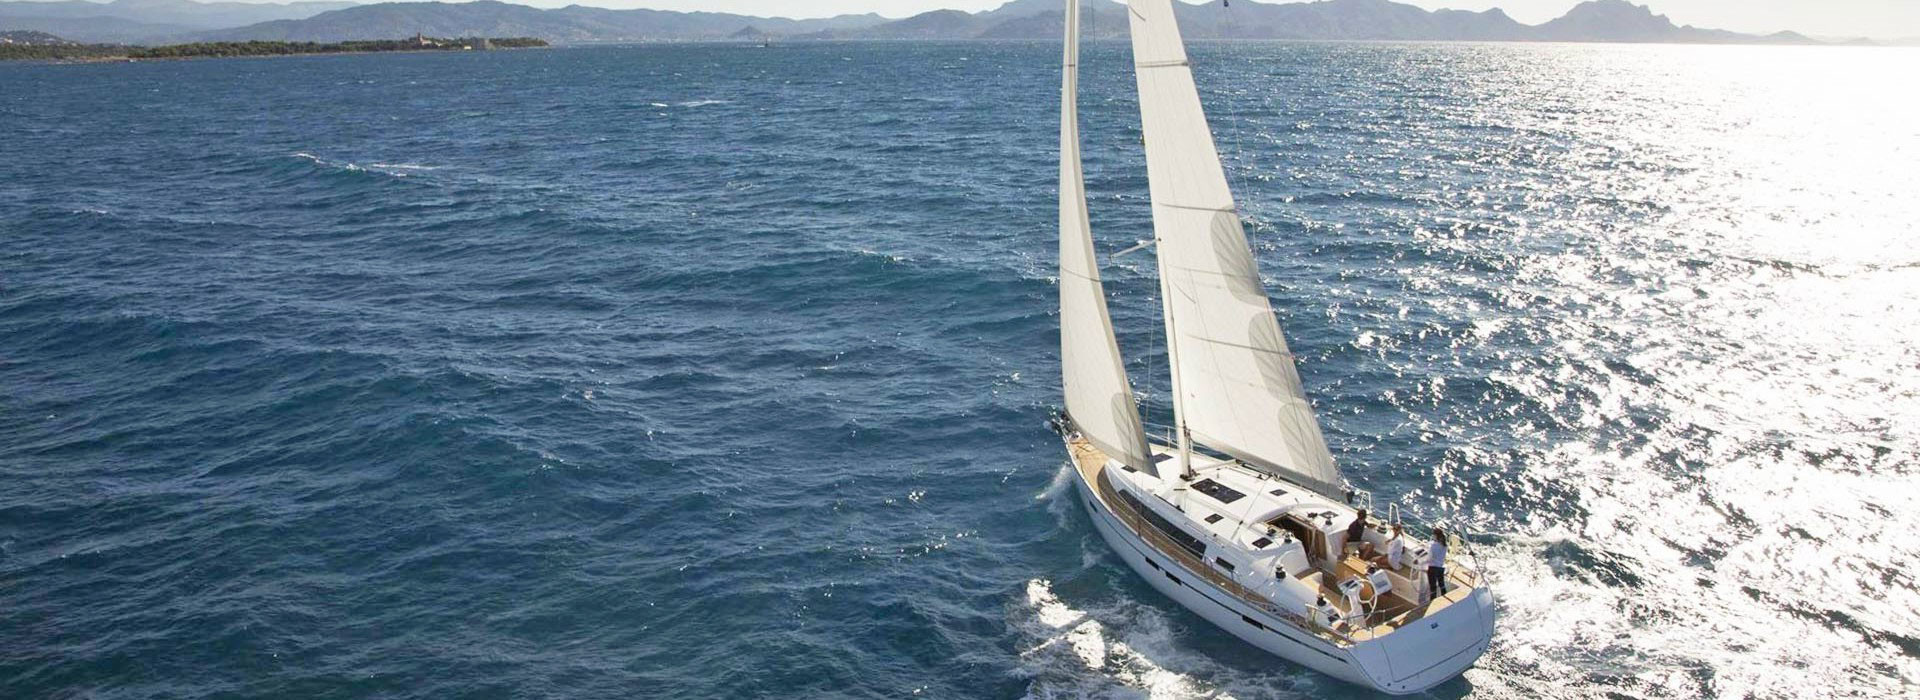 BOAT RENTAL AND SAILING HOLIDAYS ALL OVER THE WORLD